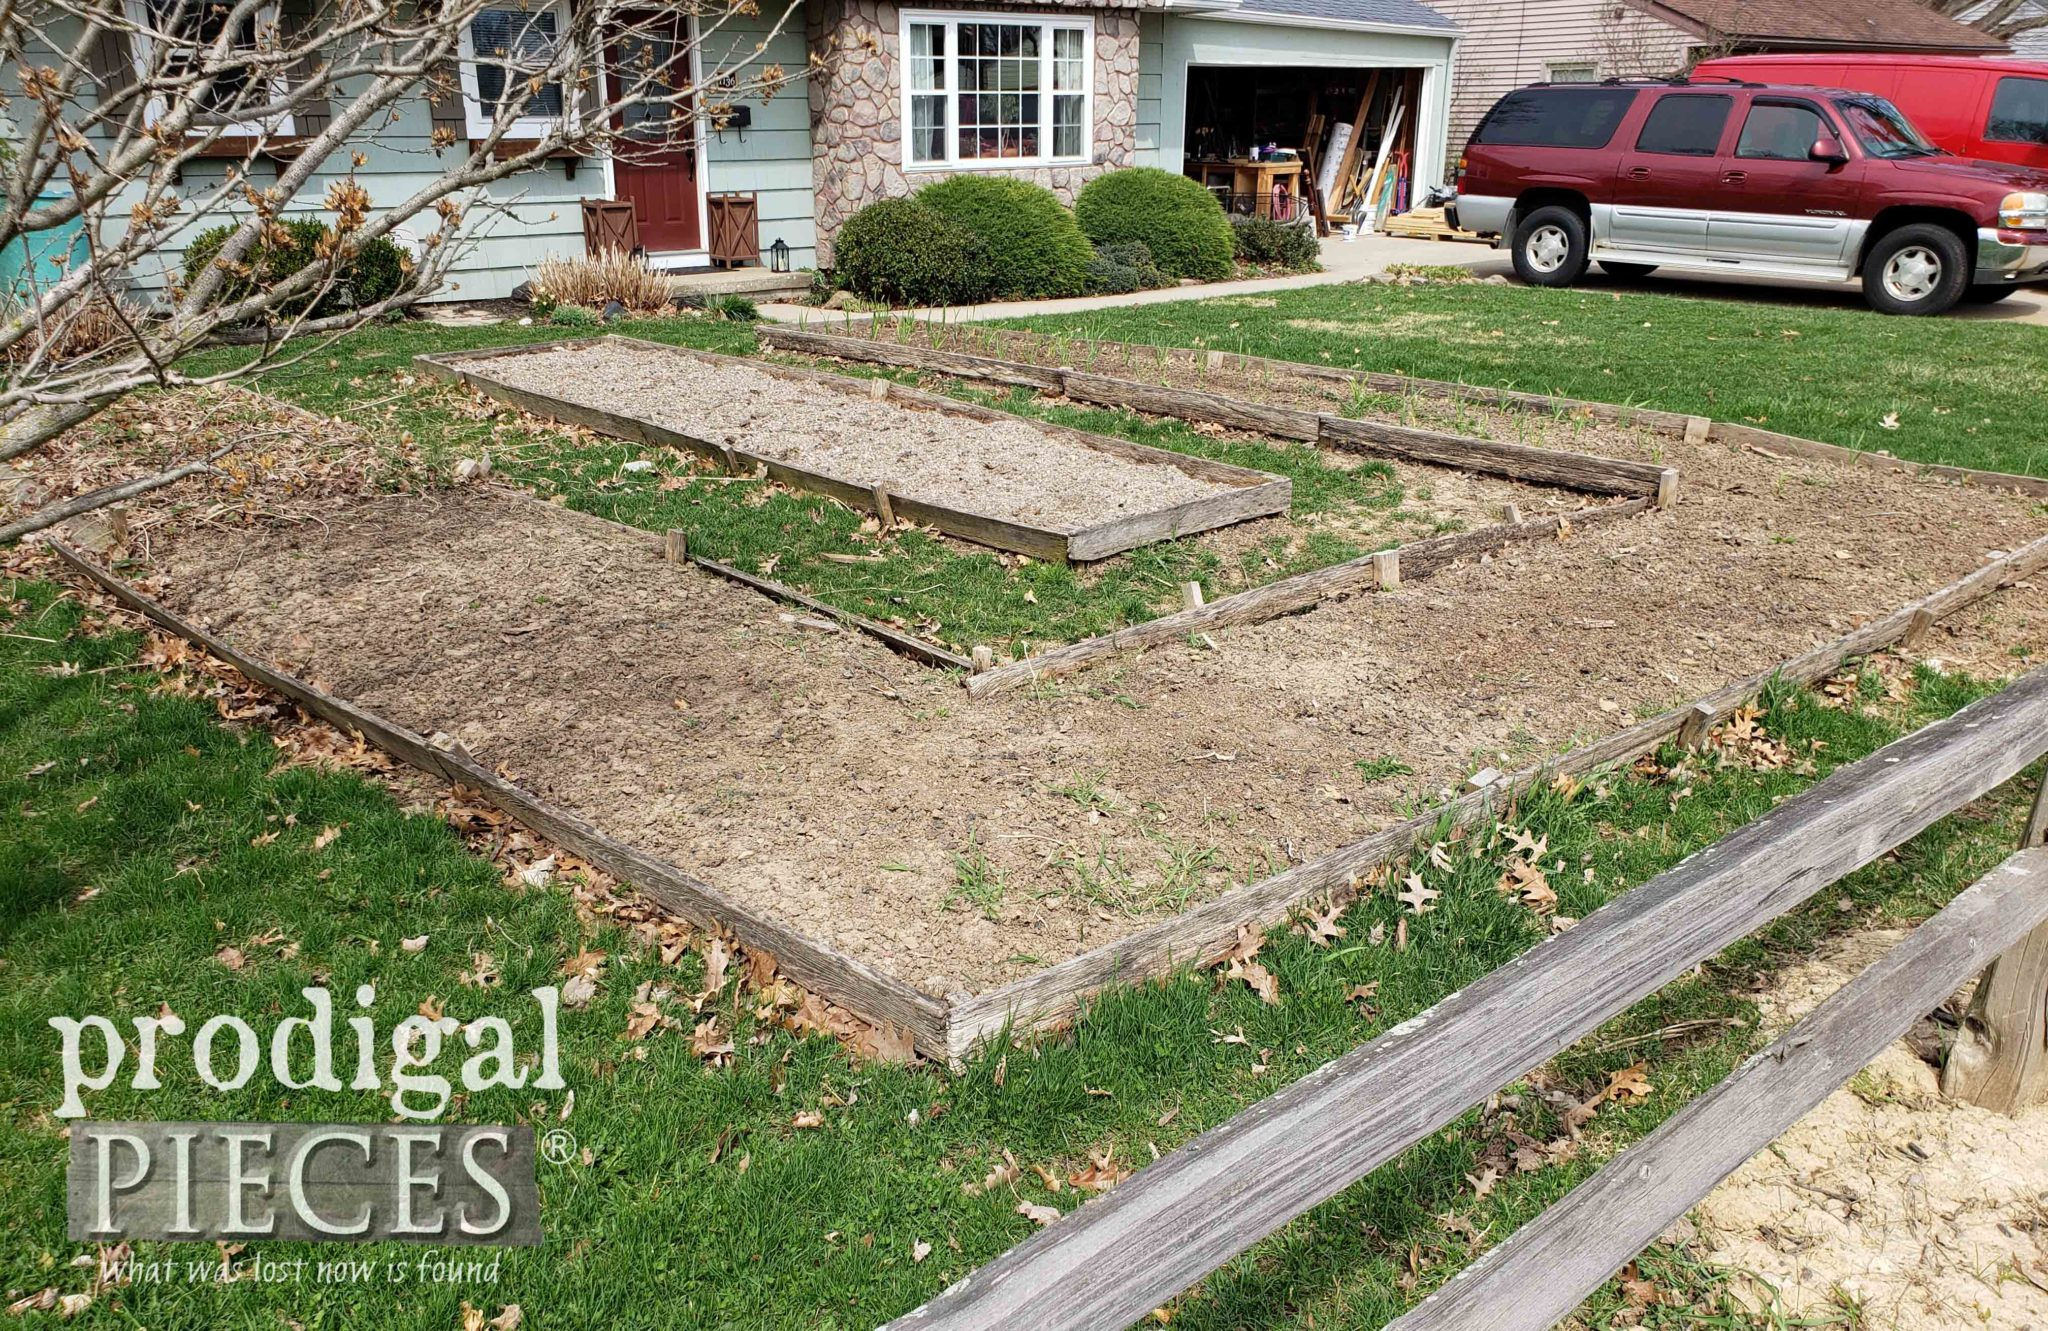 Left Side View of City Raised Garden Beds by Prodigal Pieces | prodigalpieces.com #prodigalpieces #diy #home